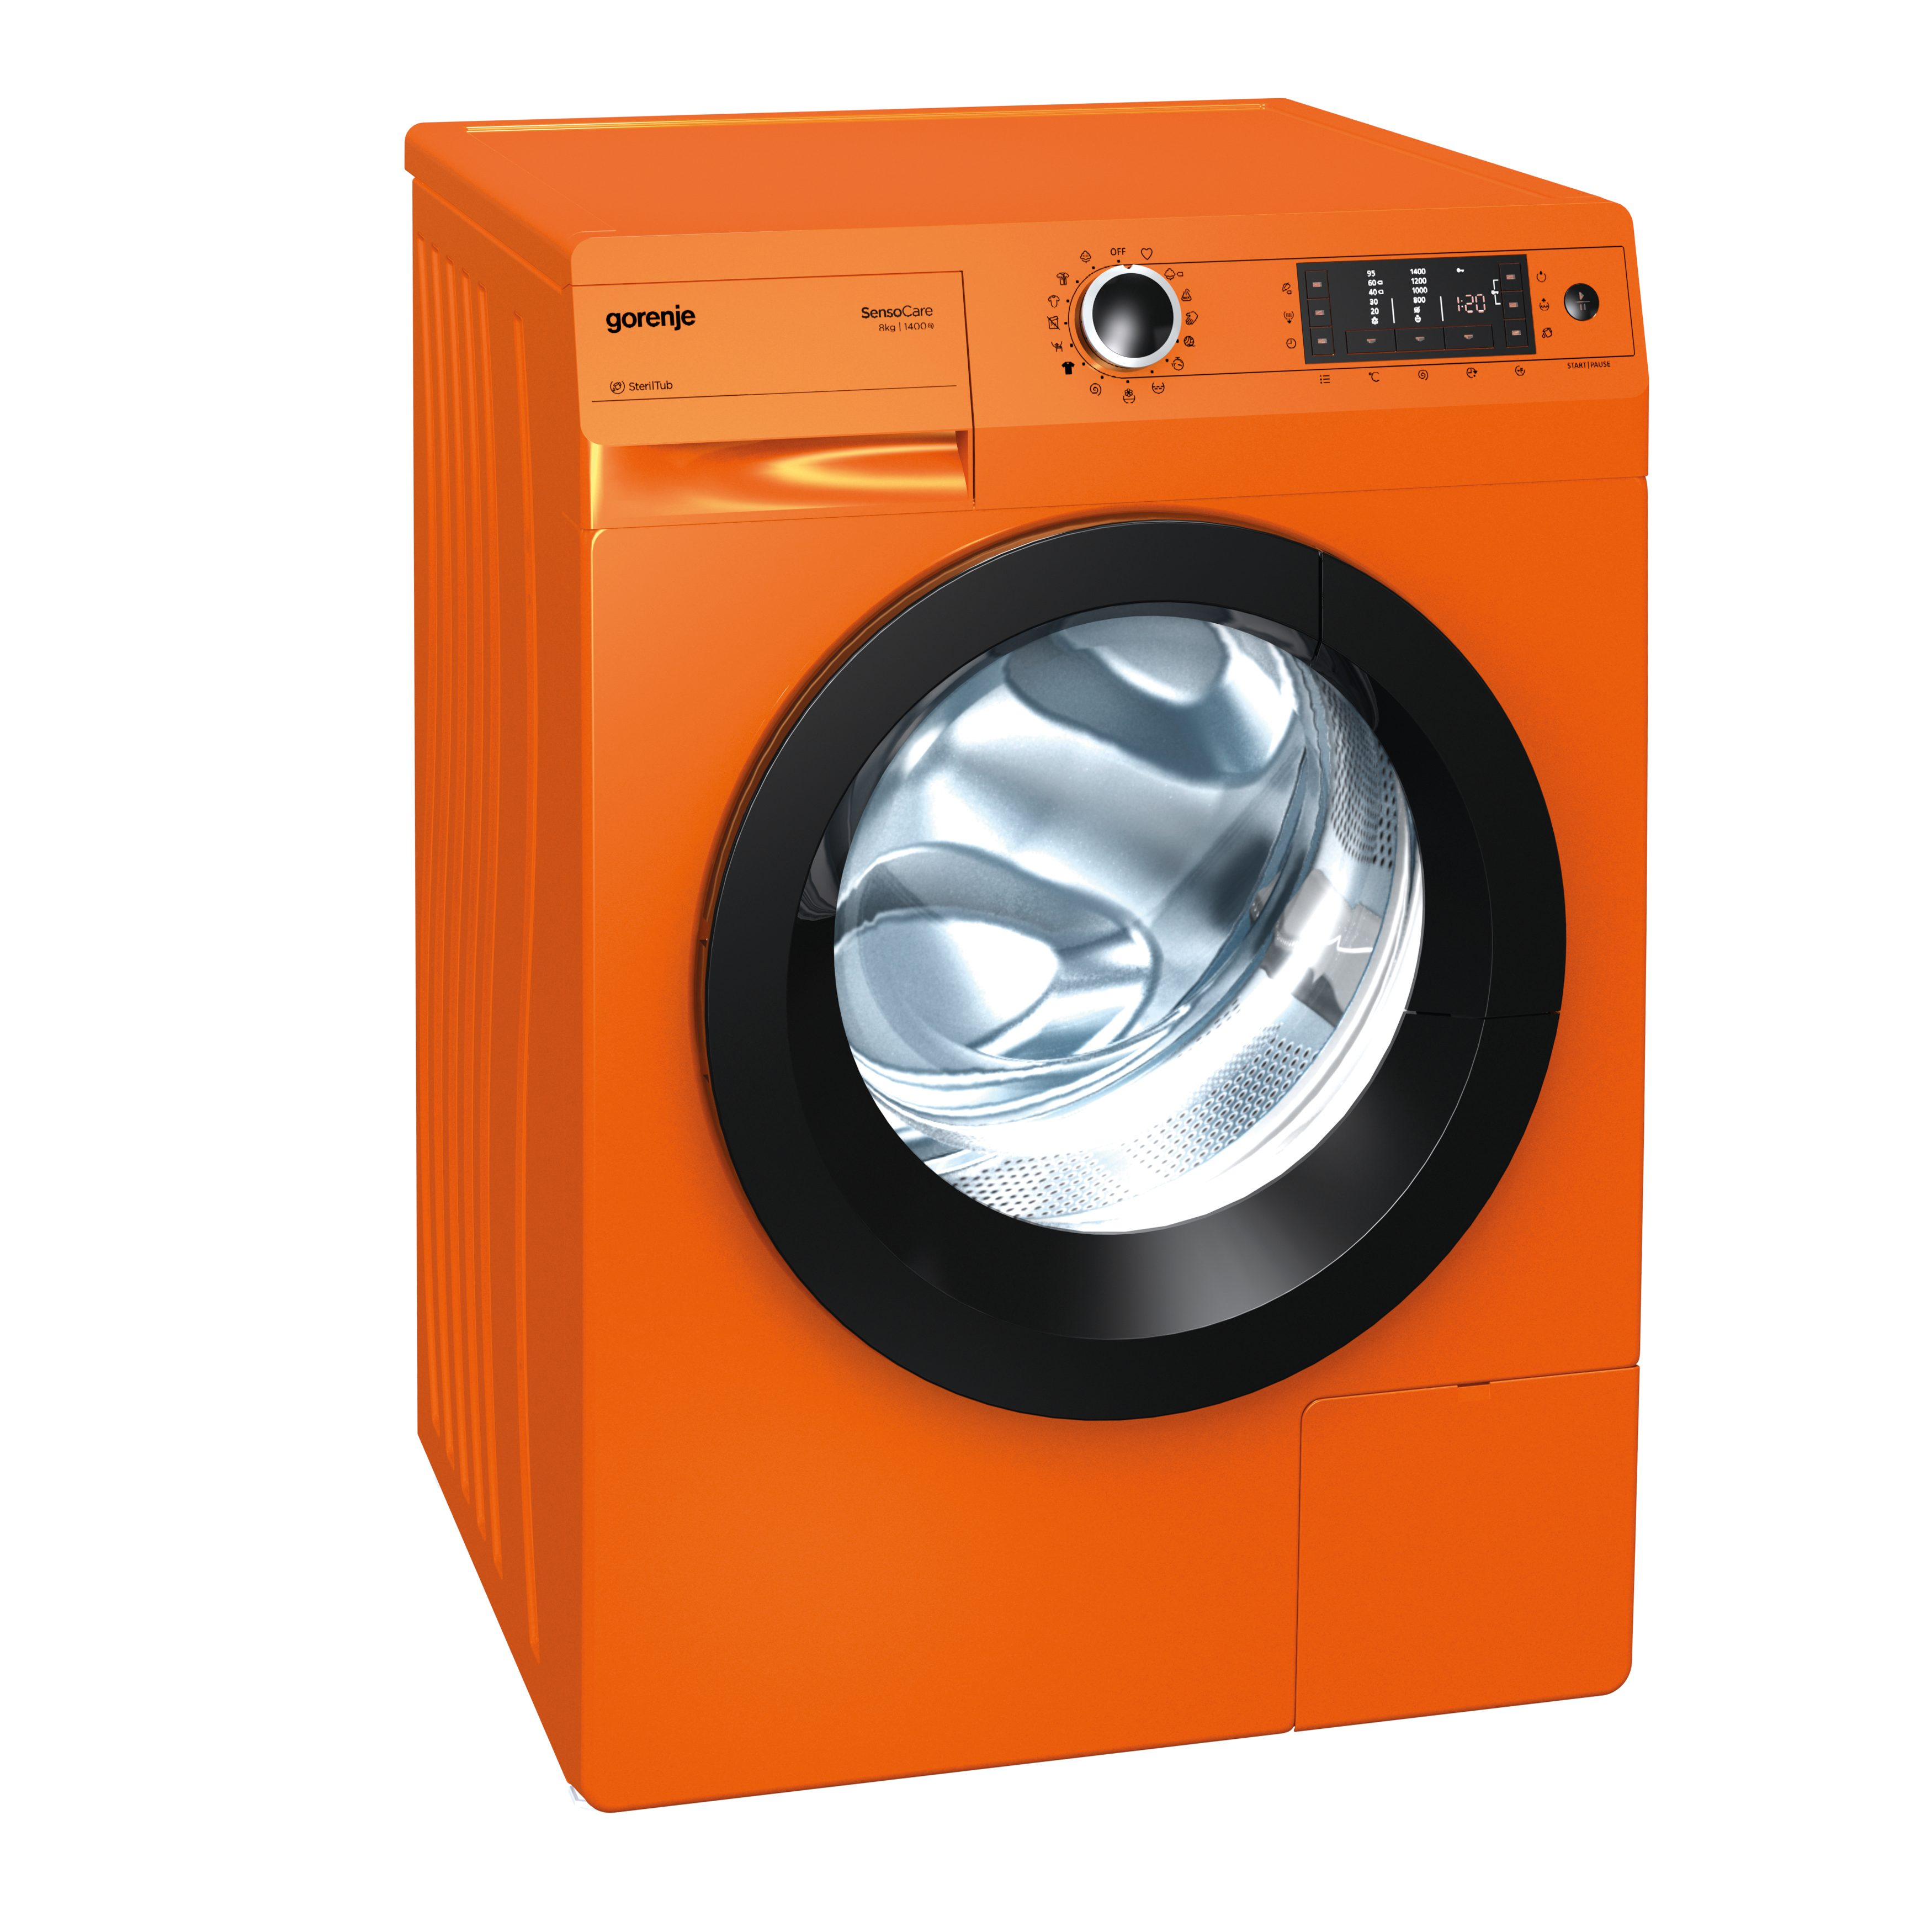 w8543 washing machine available in